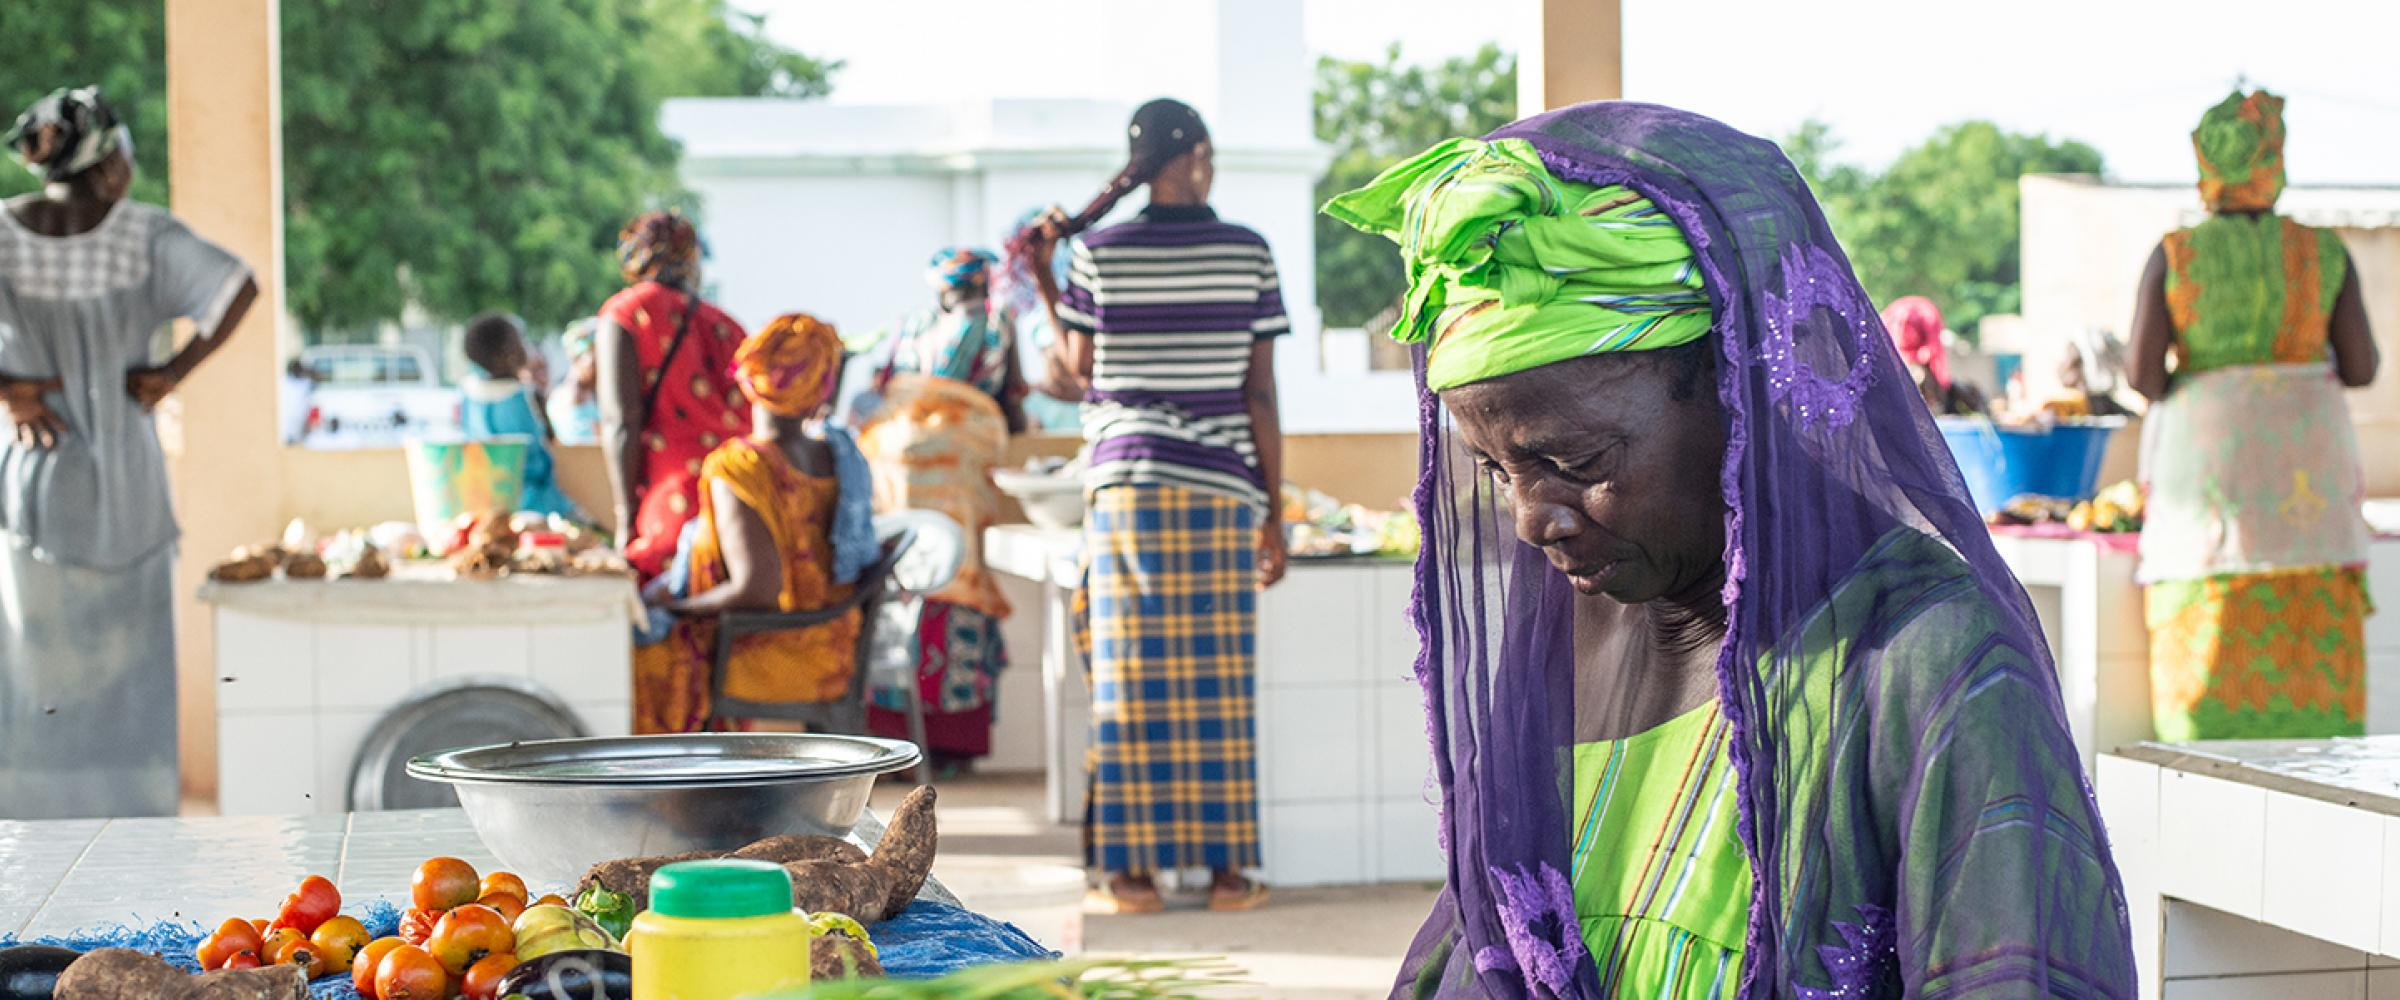 Local produce sold at the market includes items such as: legumes, root vegetables, tomatoes, garlic and onions. Here, Mme Maty Mbaye waits for a client while she cuts green onions.